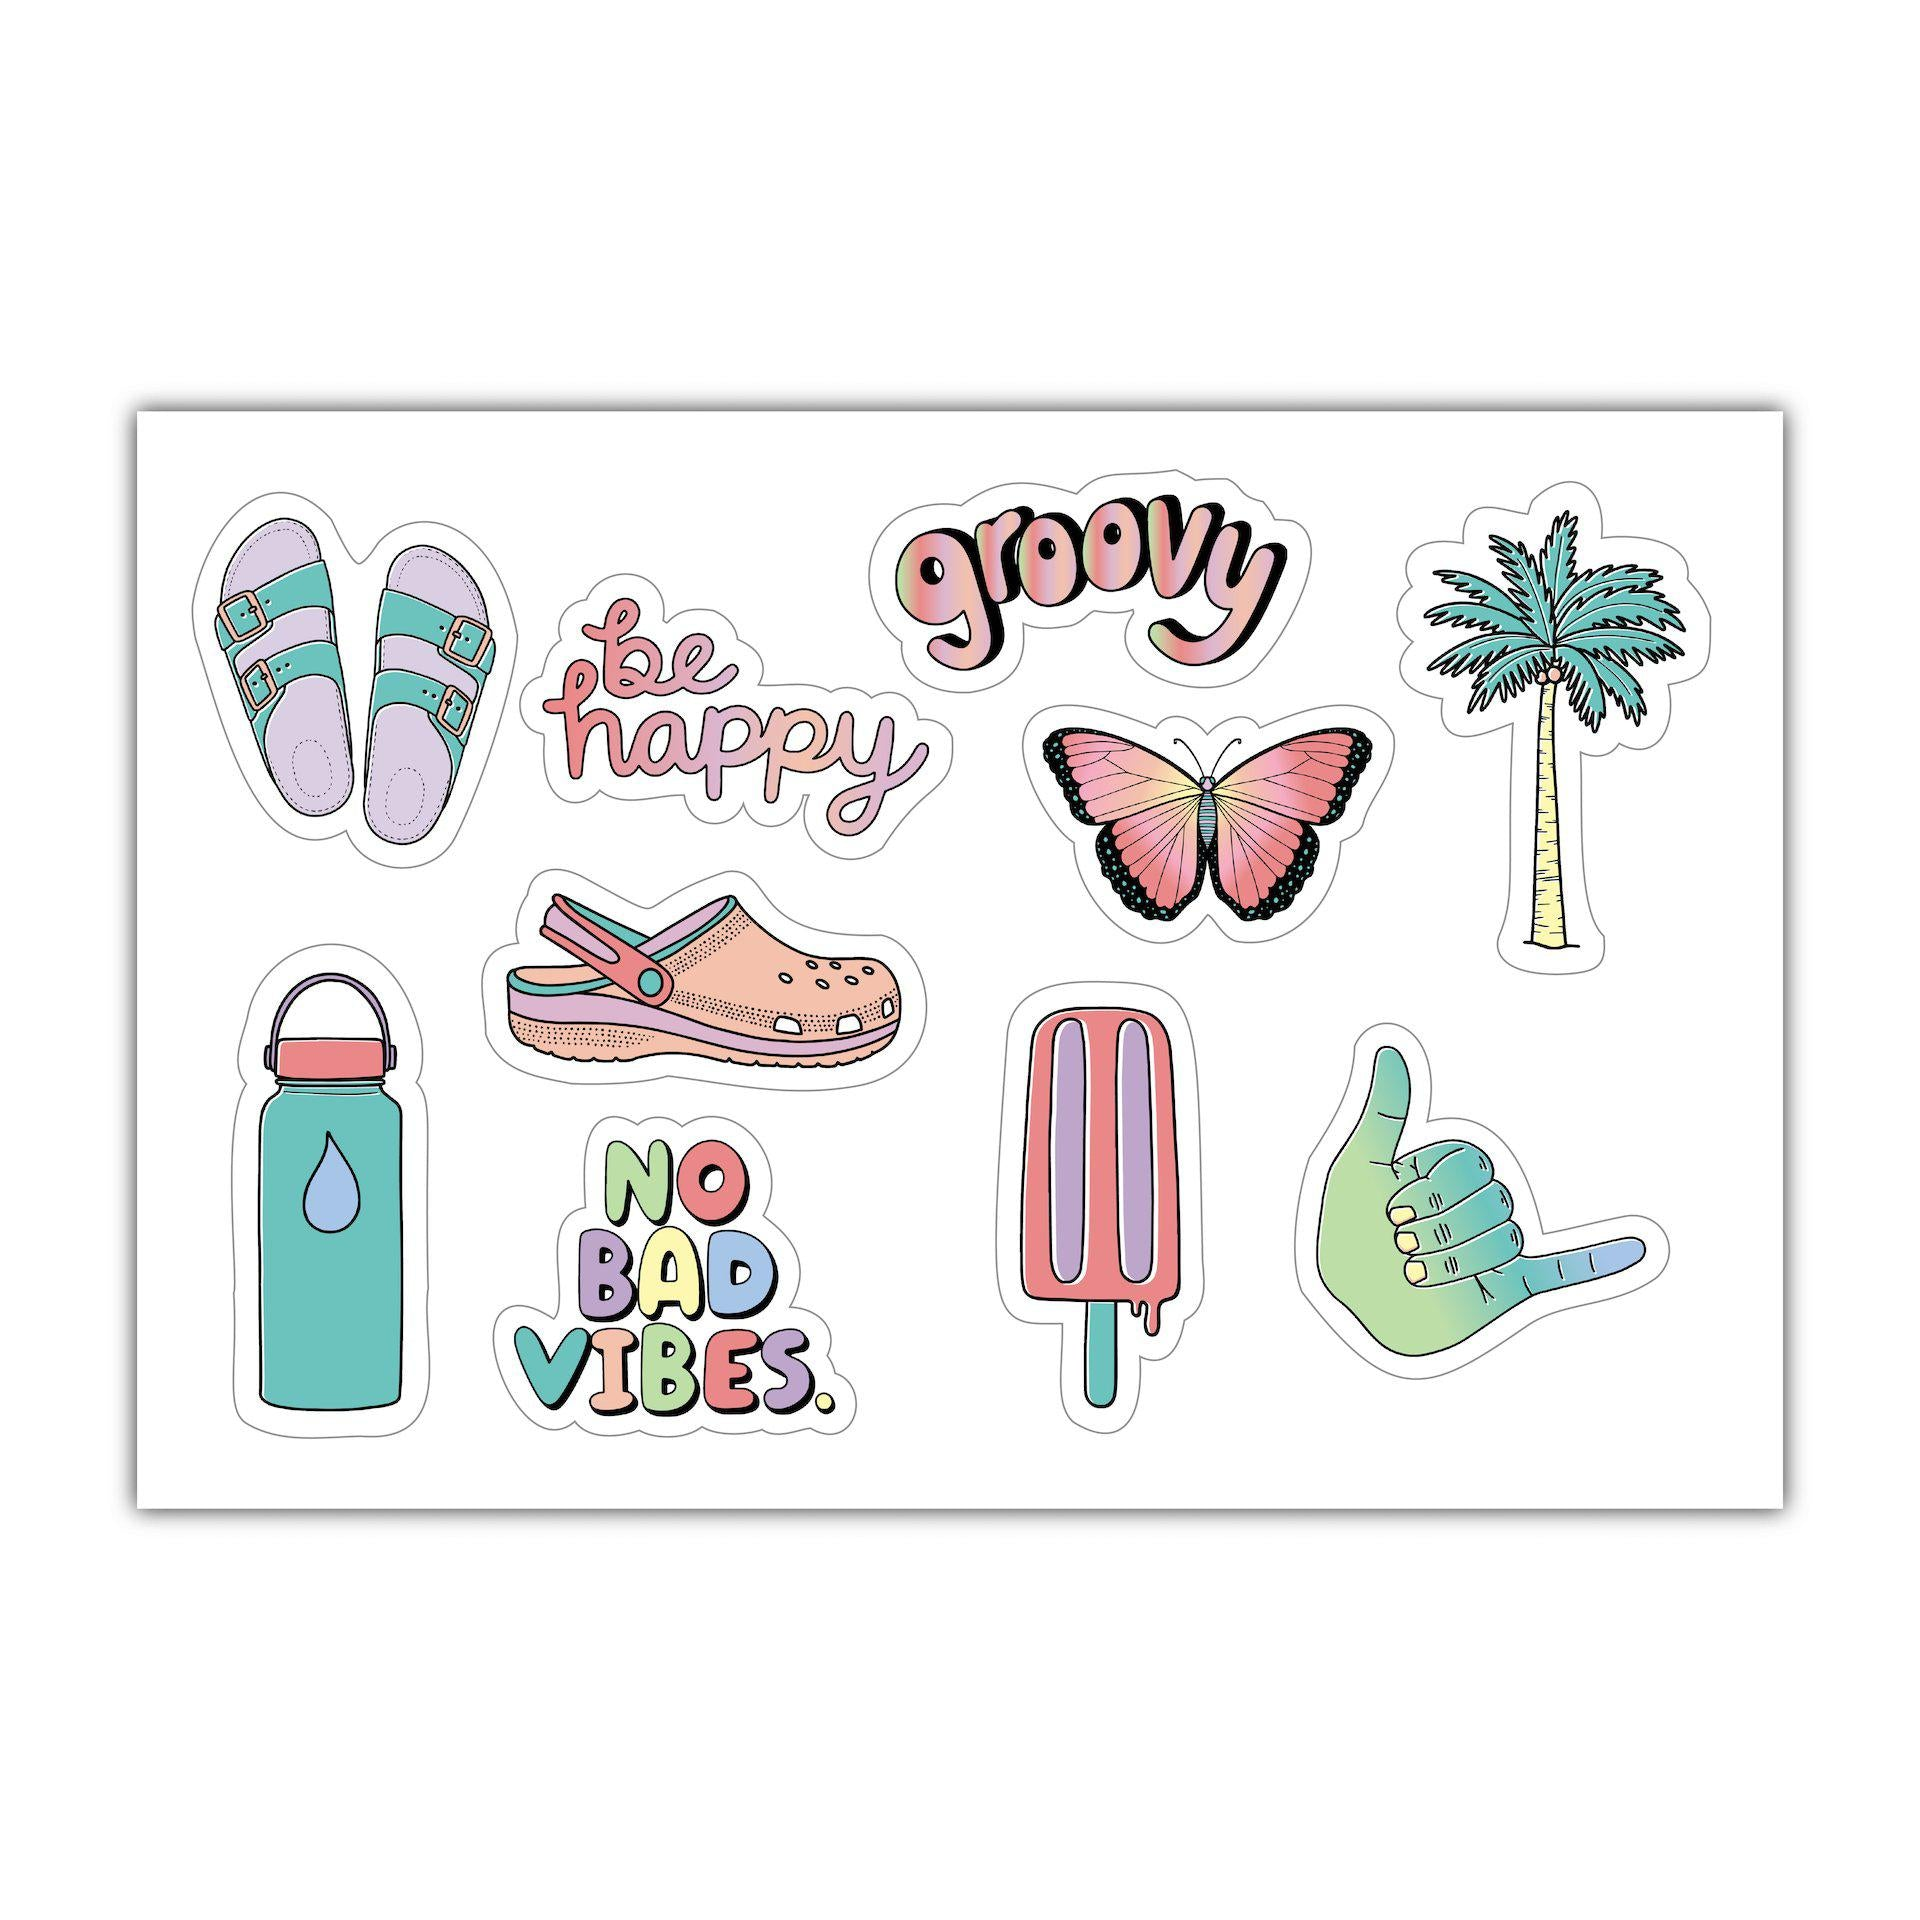 Water Bottle Cute Aesthetic Stickers Laptop Vsco Stickers Pack 103 Pcs Decals for Water Bottle Laptops Ipad Cars Luggages